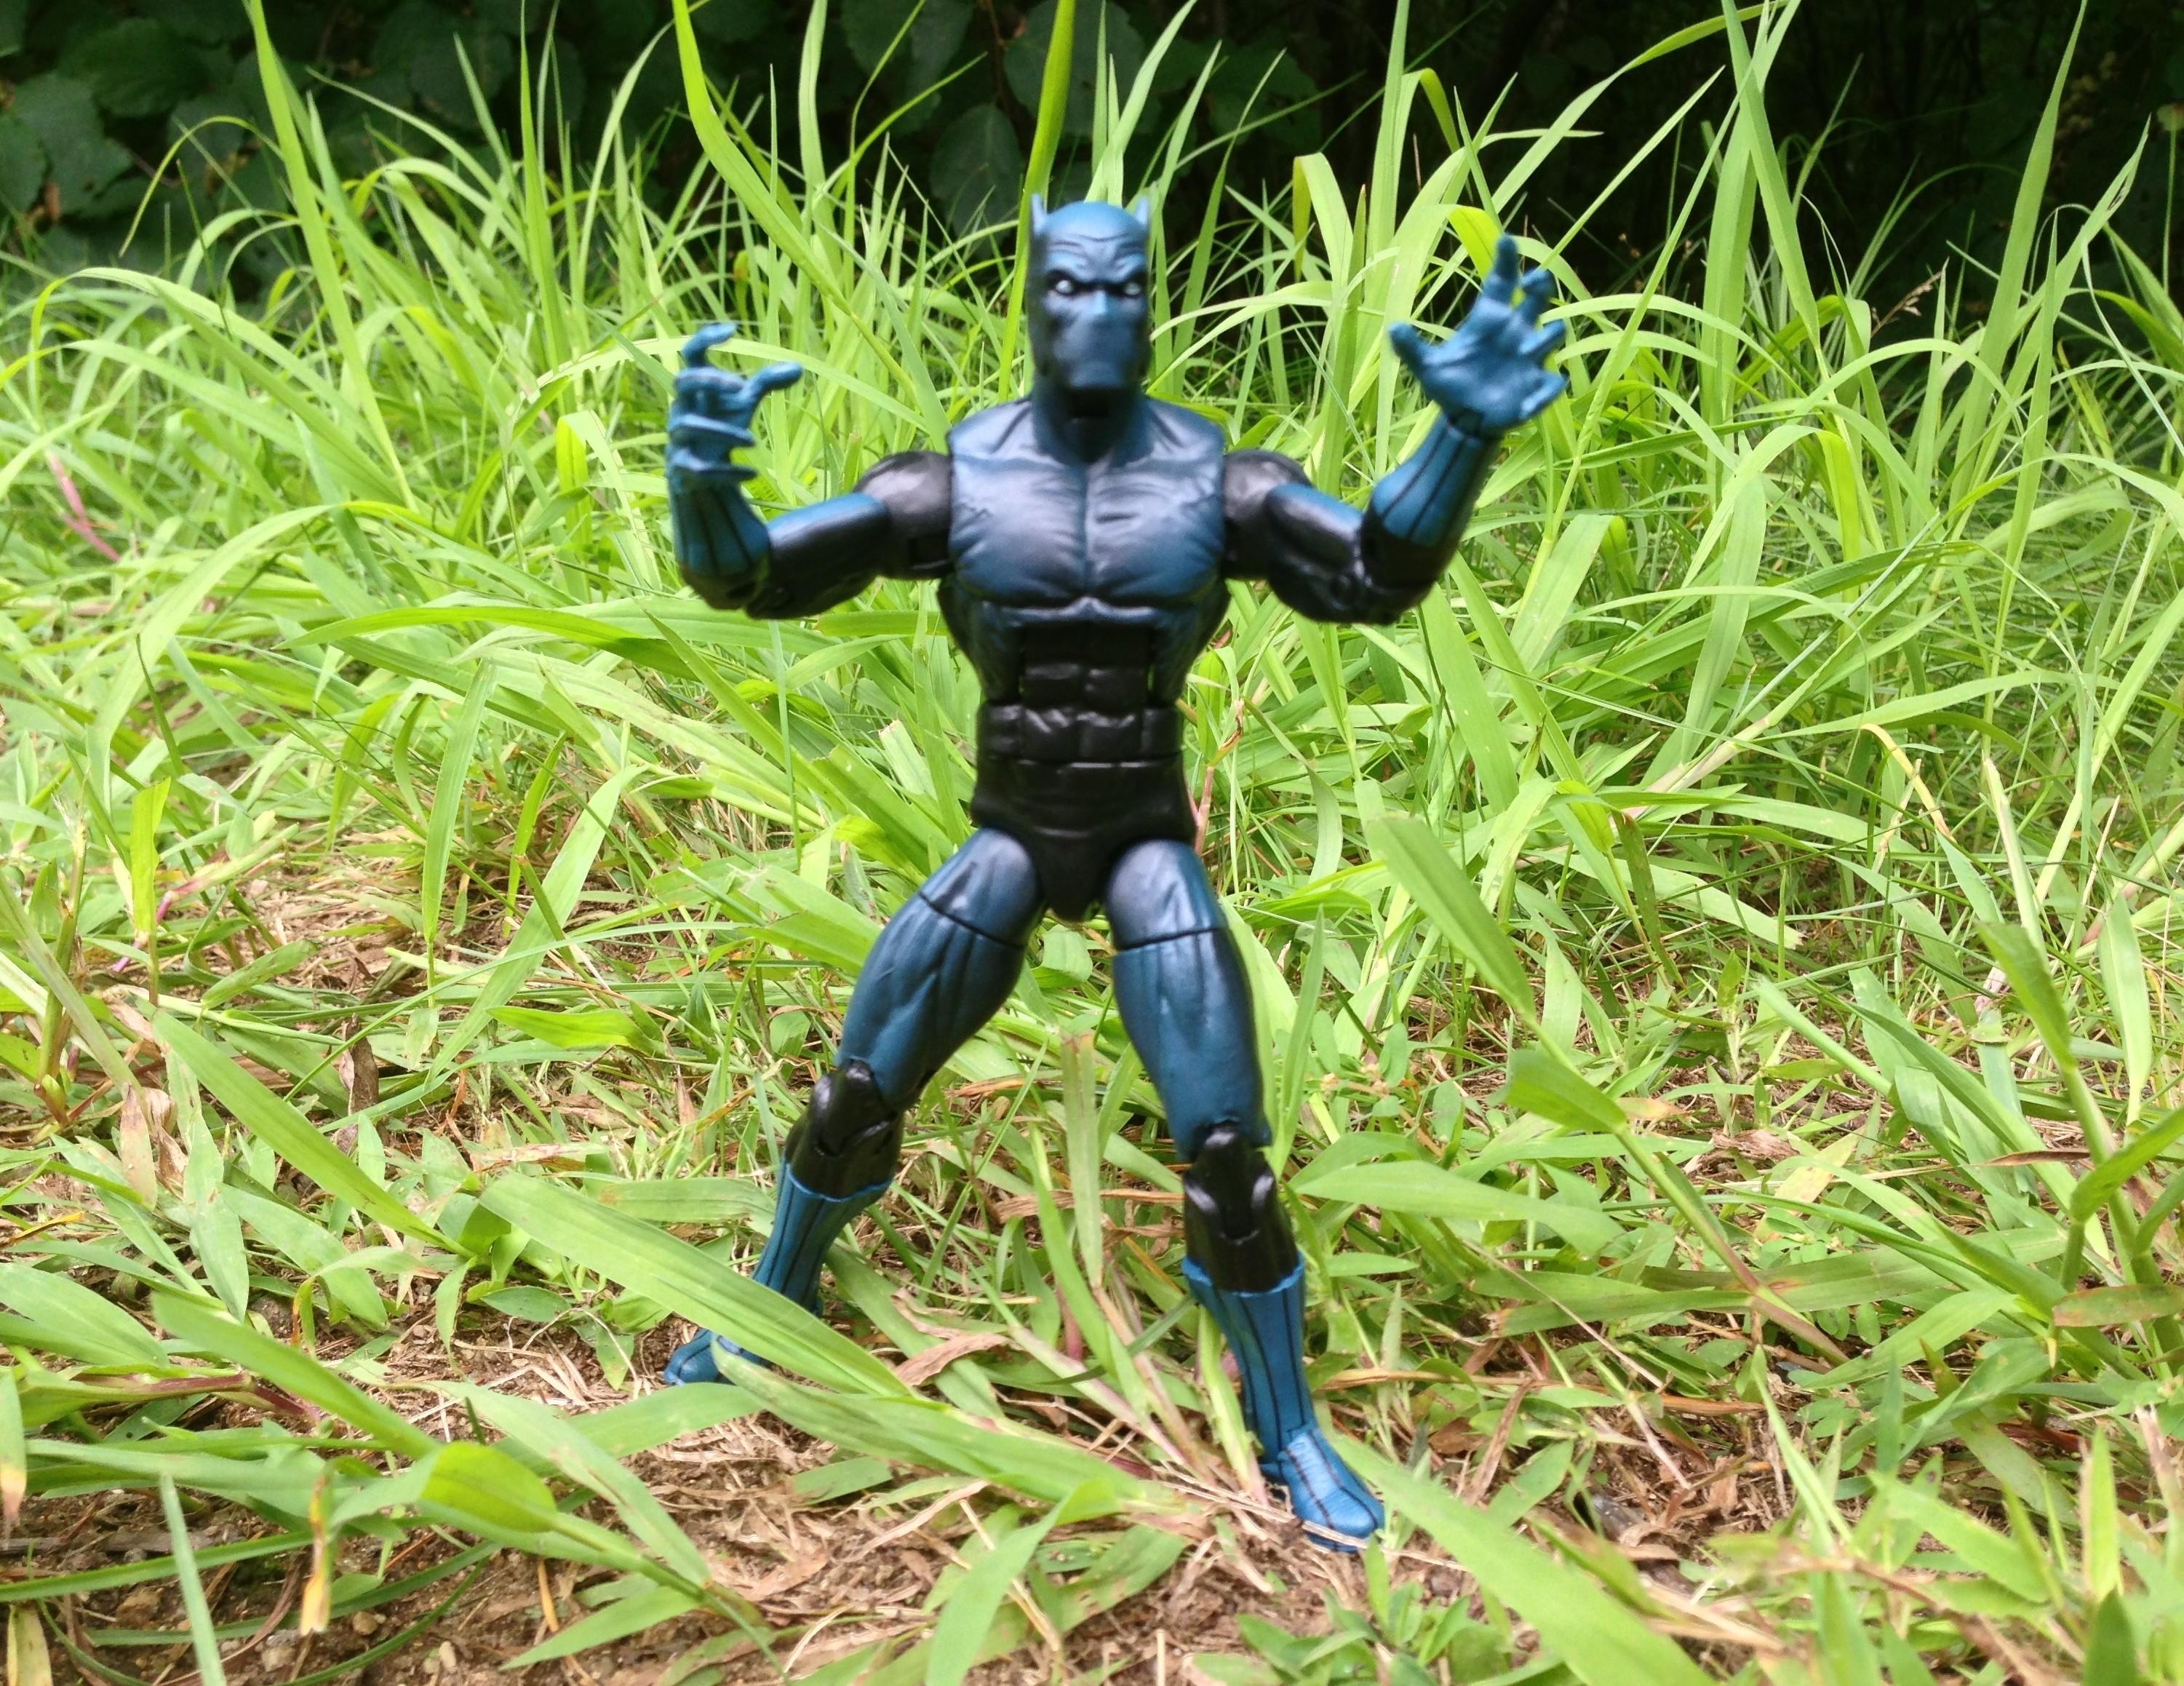 Marvel Legends Black Panther 2013 Figure Stalks in the Jungle